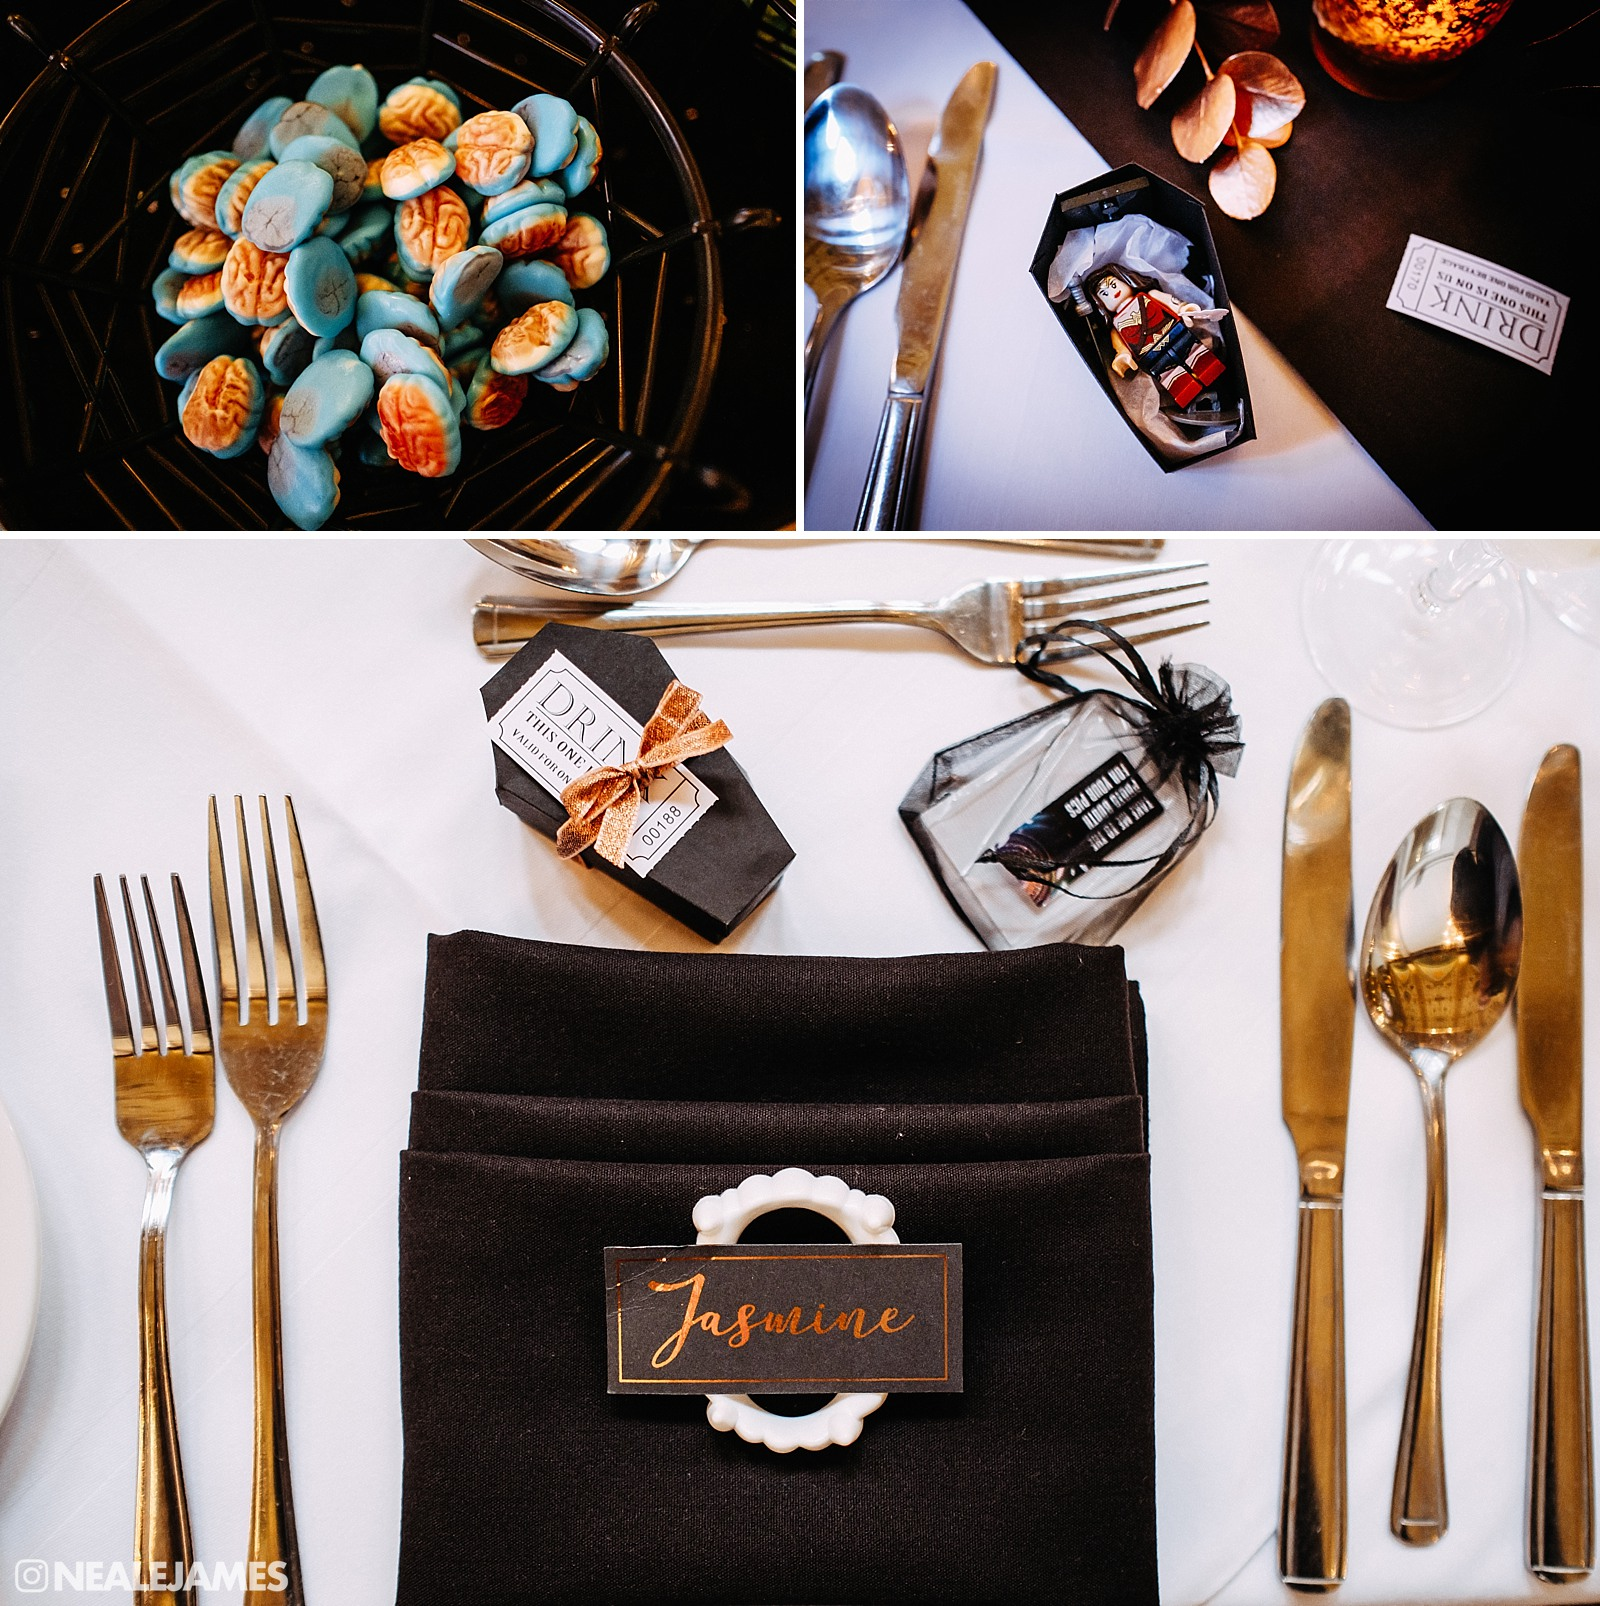 Colour picture of alternative wedding favours at a Halloween wedding